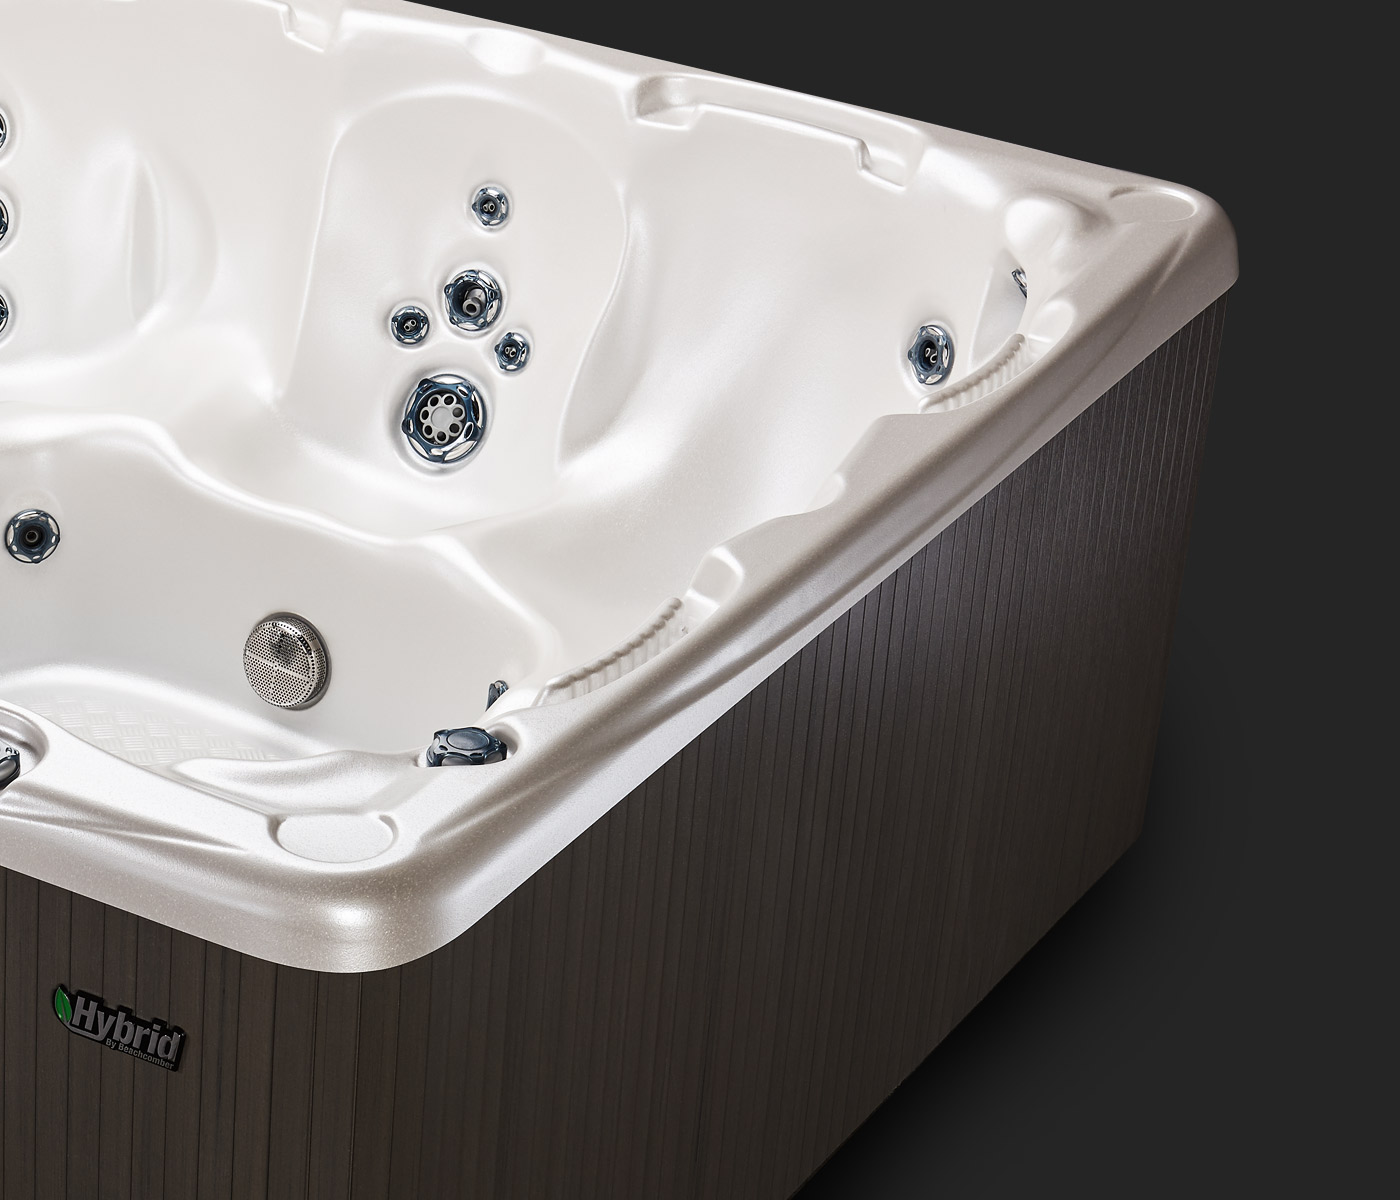 Beachcomber Hot Tubs Modèle 580